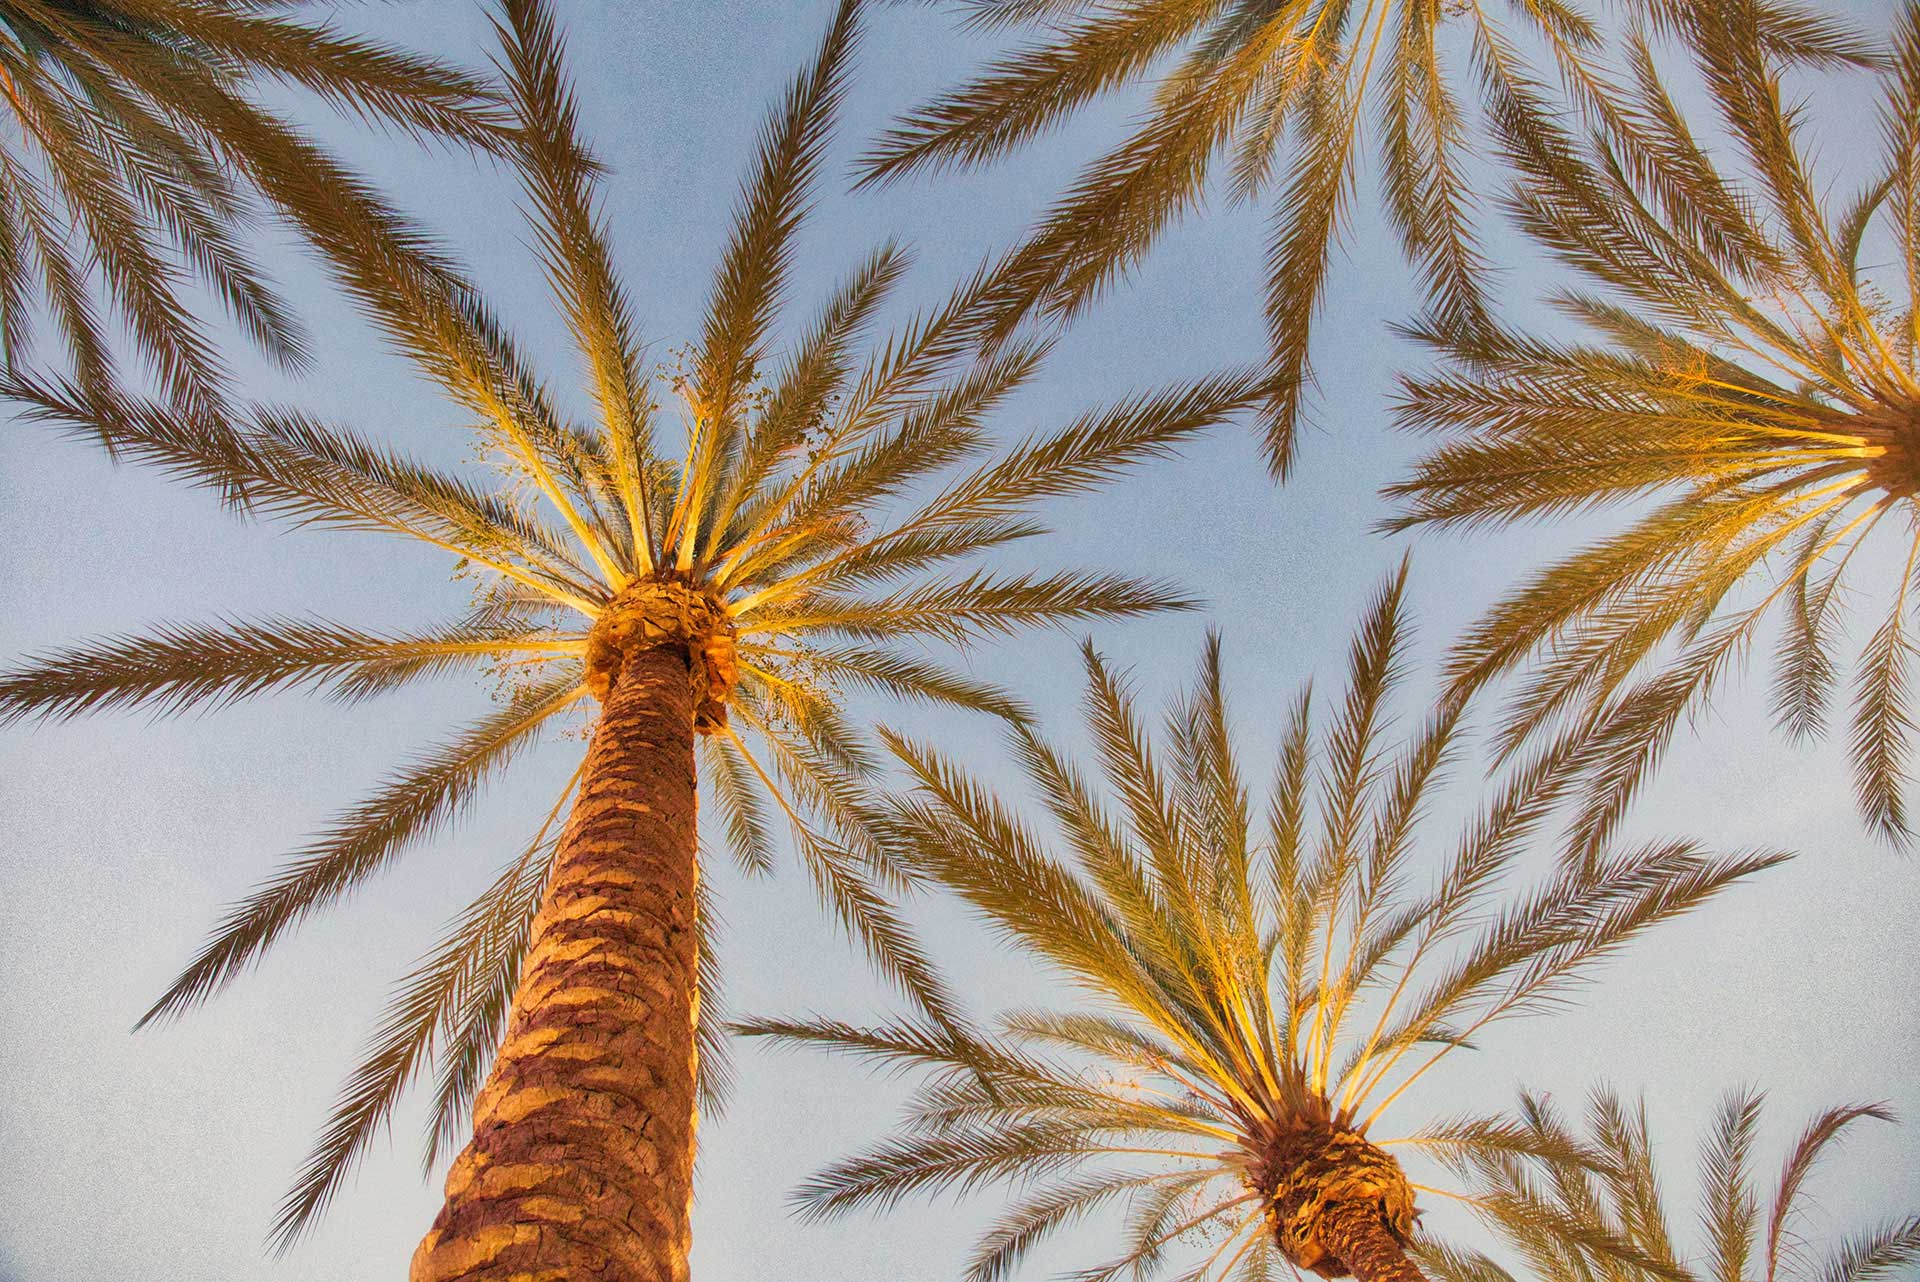 A photo of palm trees taken from below during the late afternoon